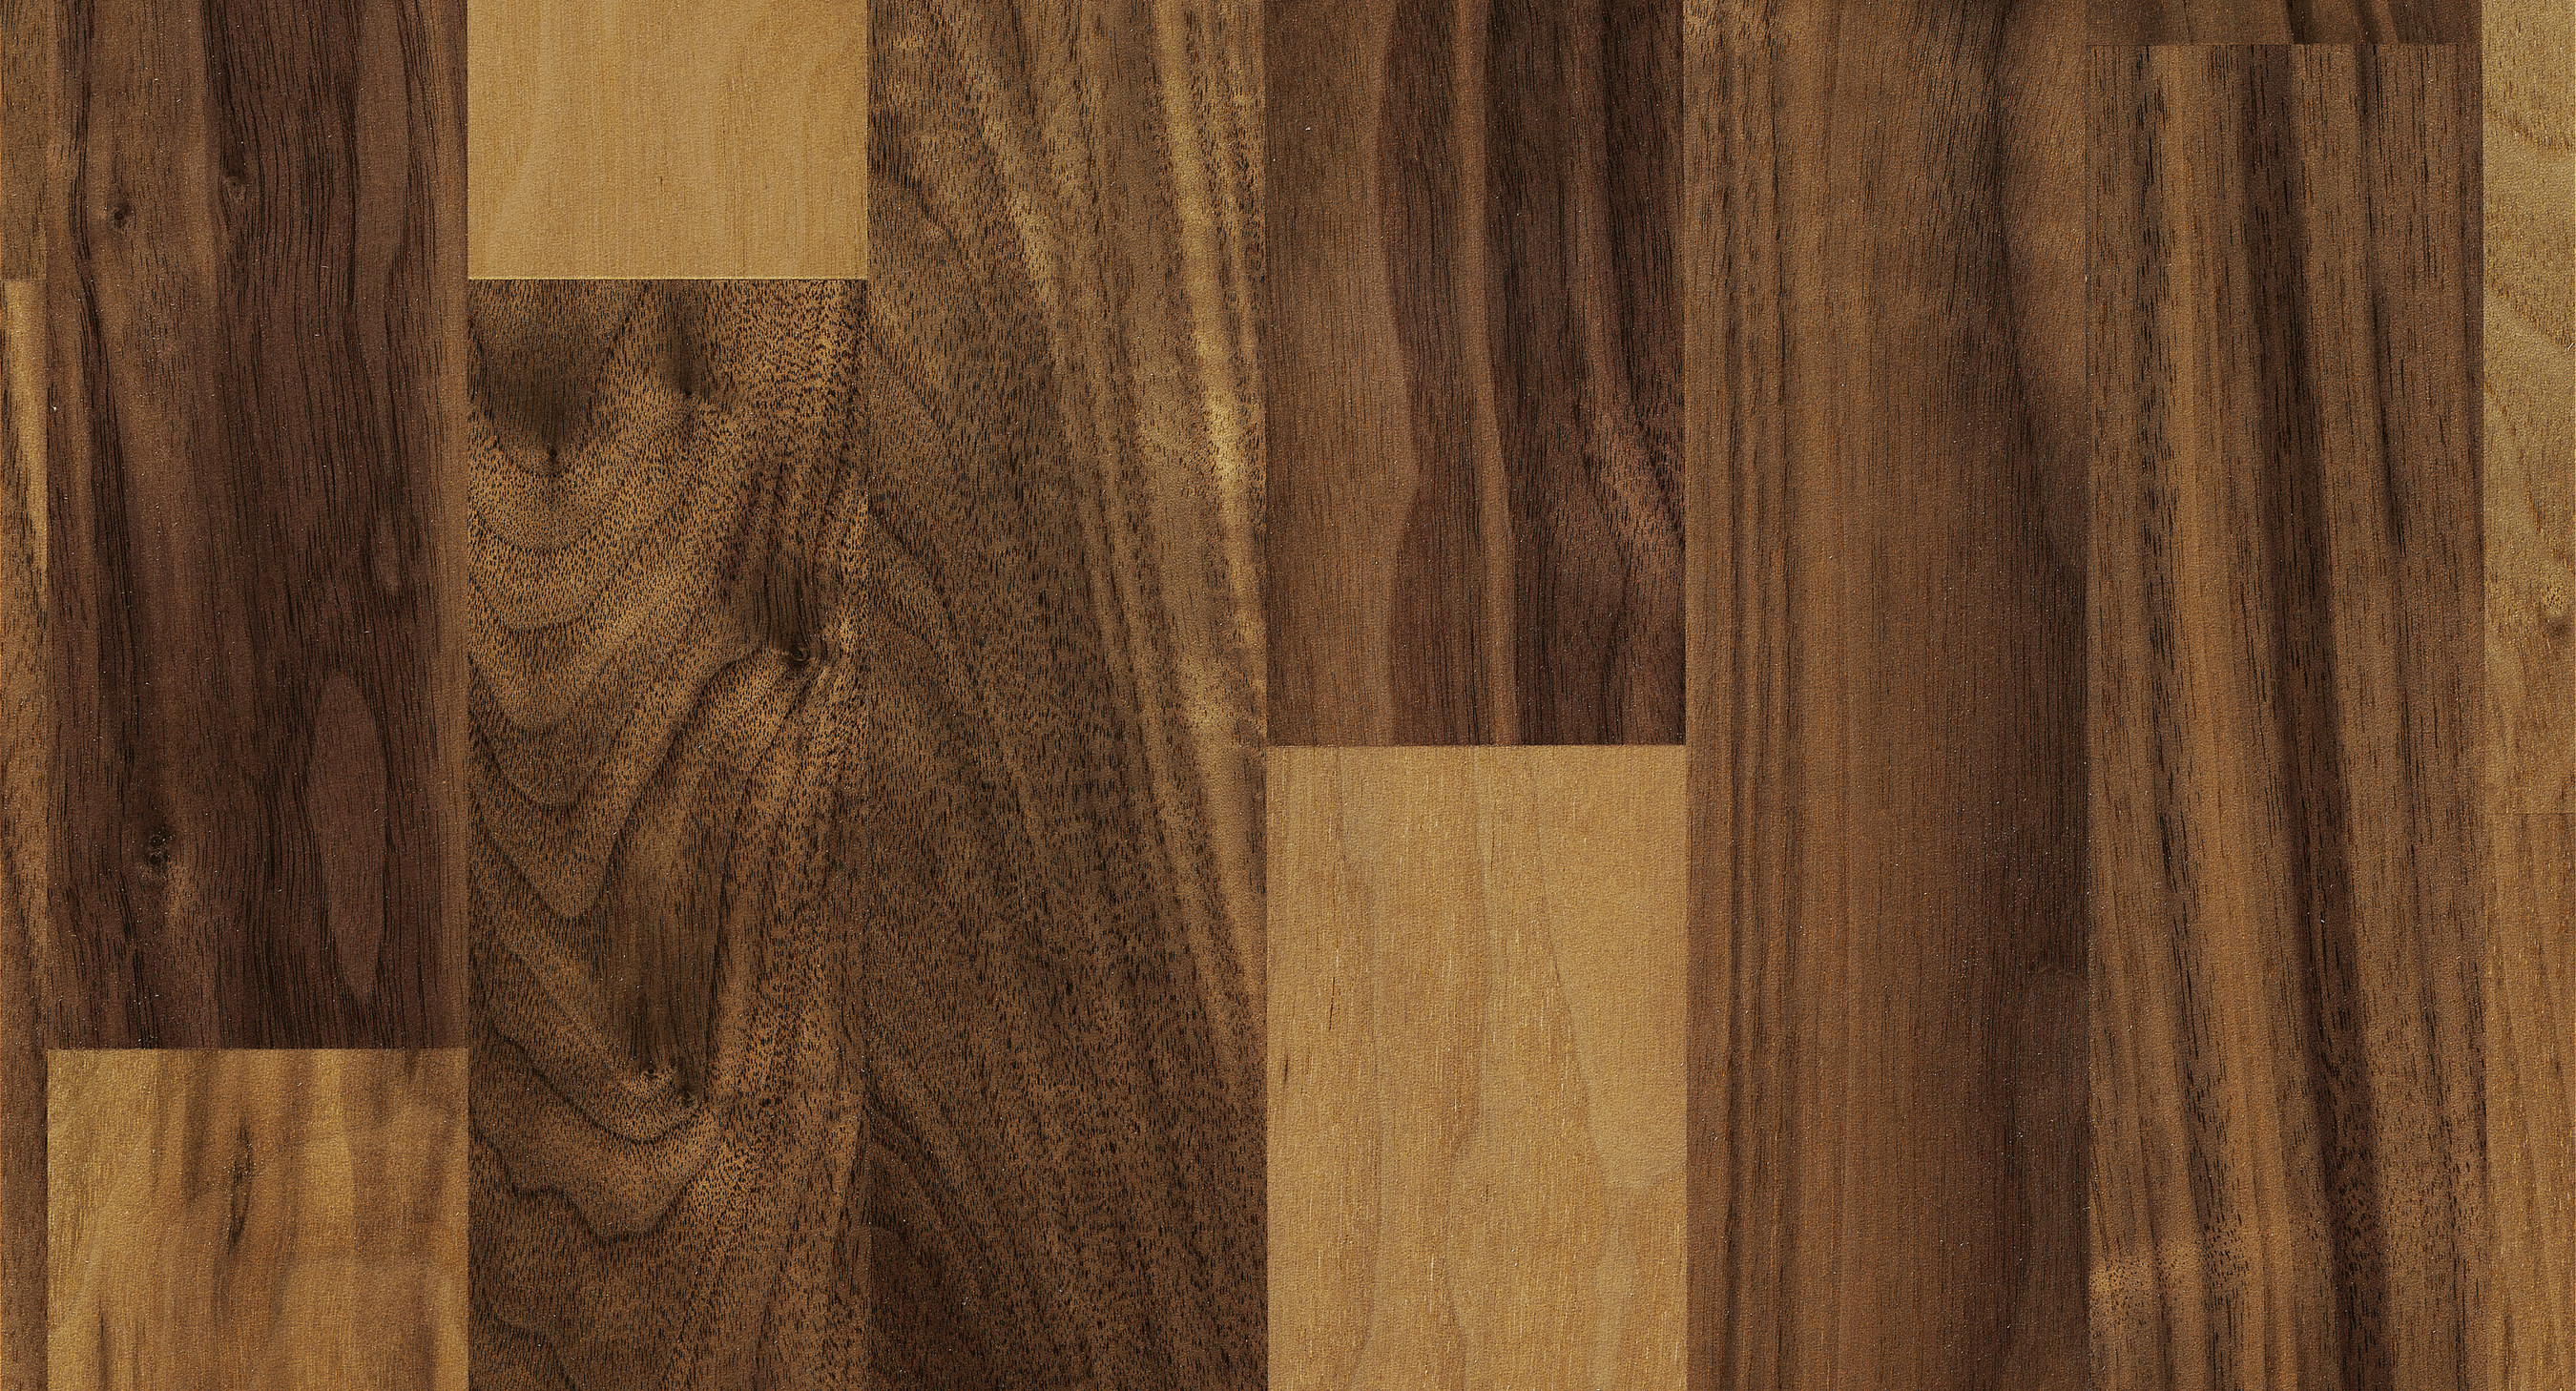 hardwood floor store of basic engineered wood flooring products parador with 45a